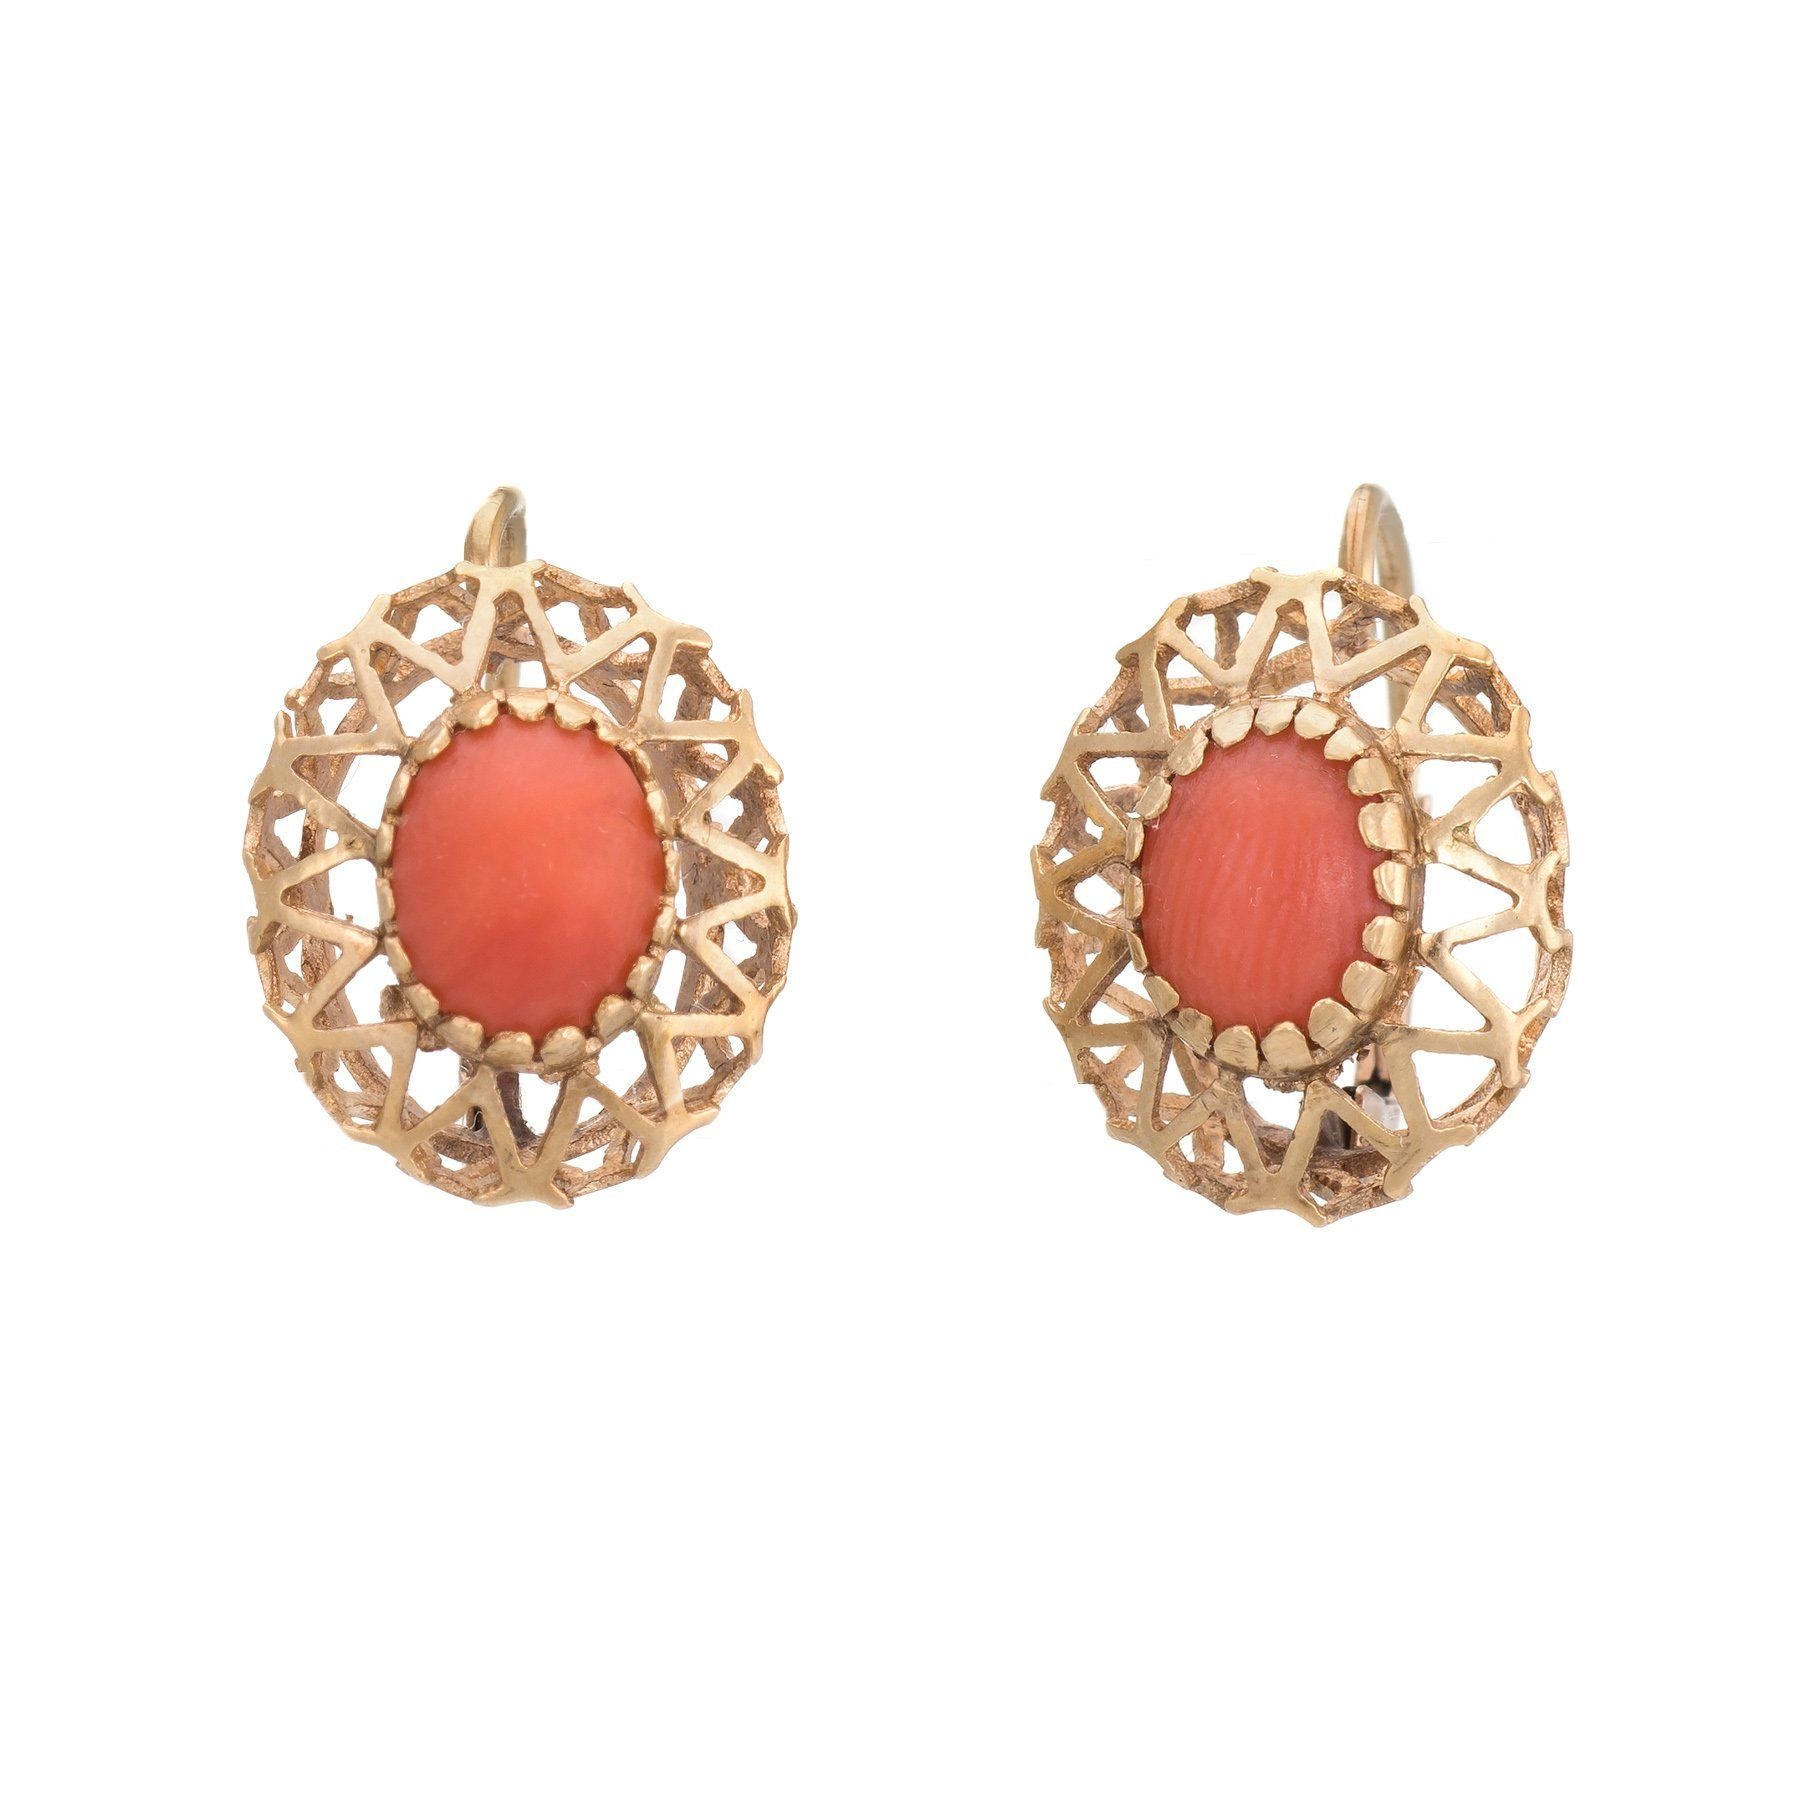 3b3c5d90e Vintage Red Coral Earrings Drops 10k Yellow Gold Estate Fine Jewelry  Heirloom